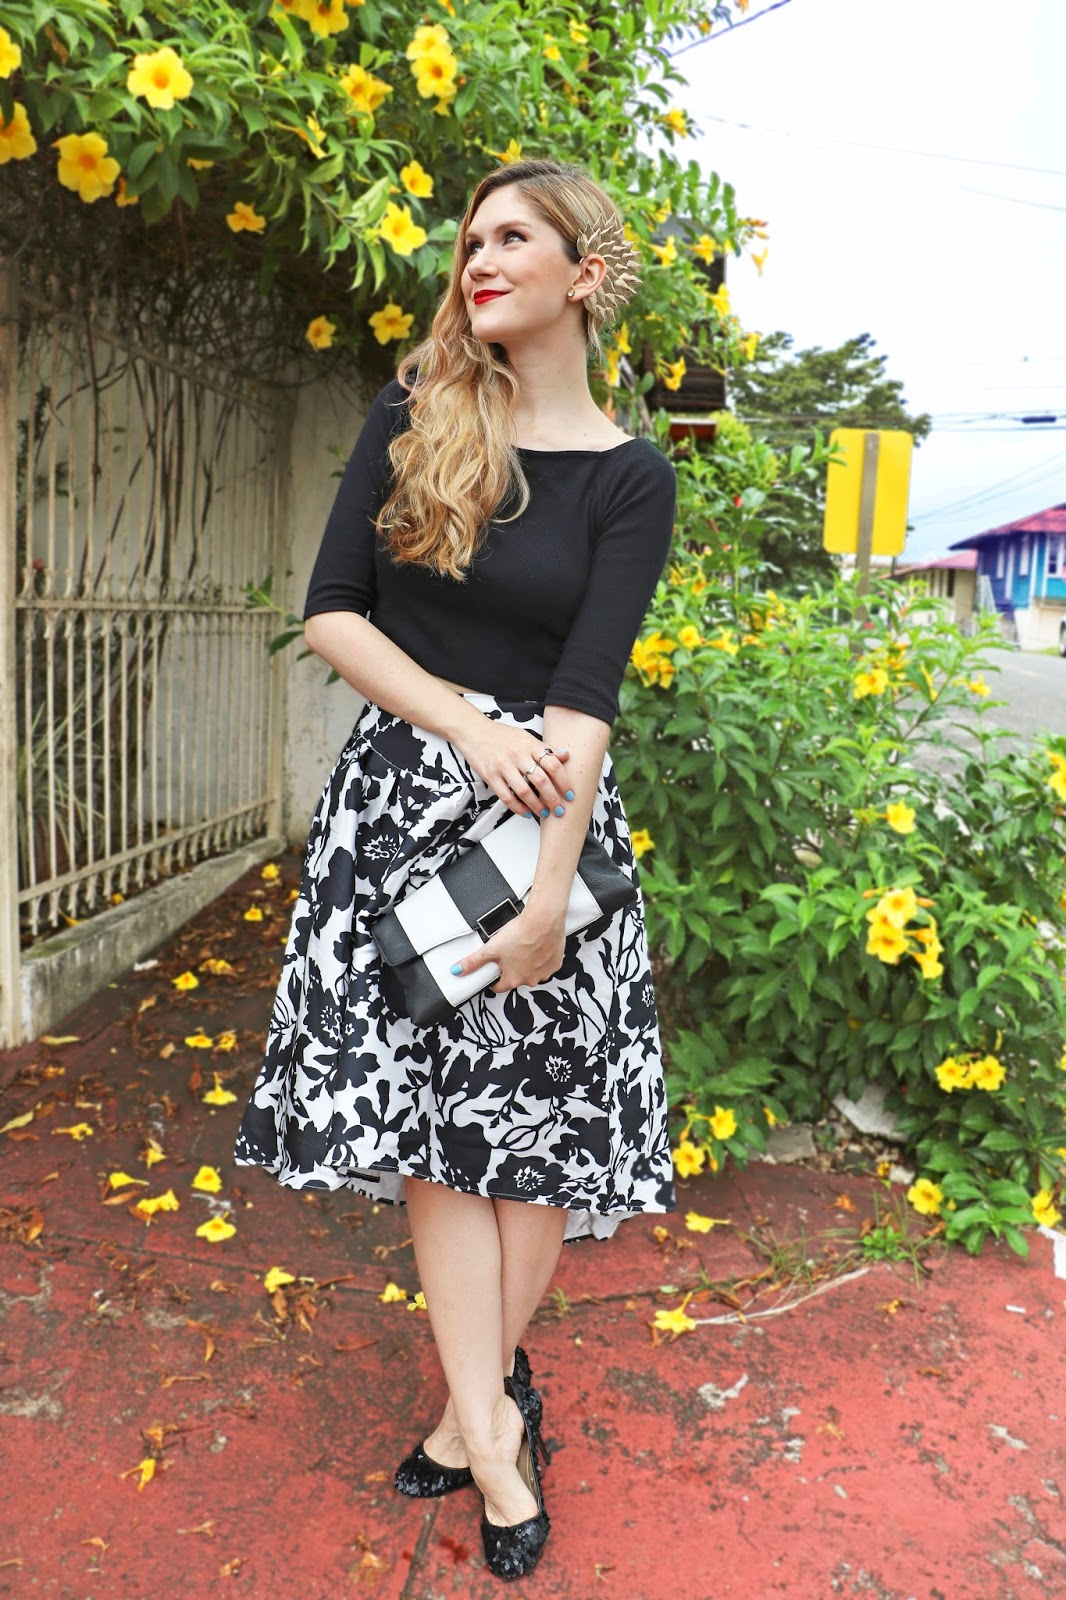 Elegant Black and White Outfit